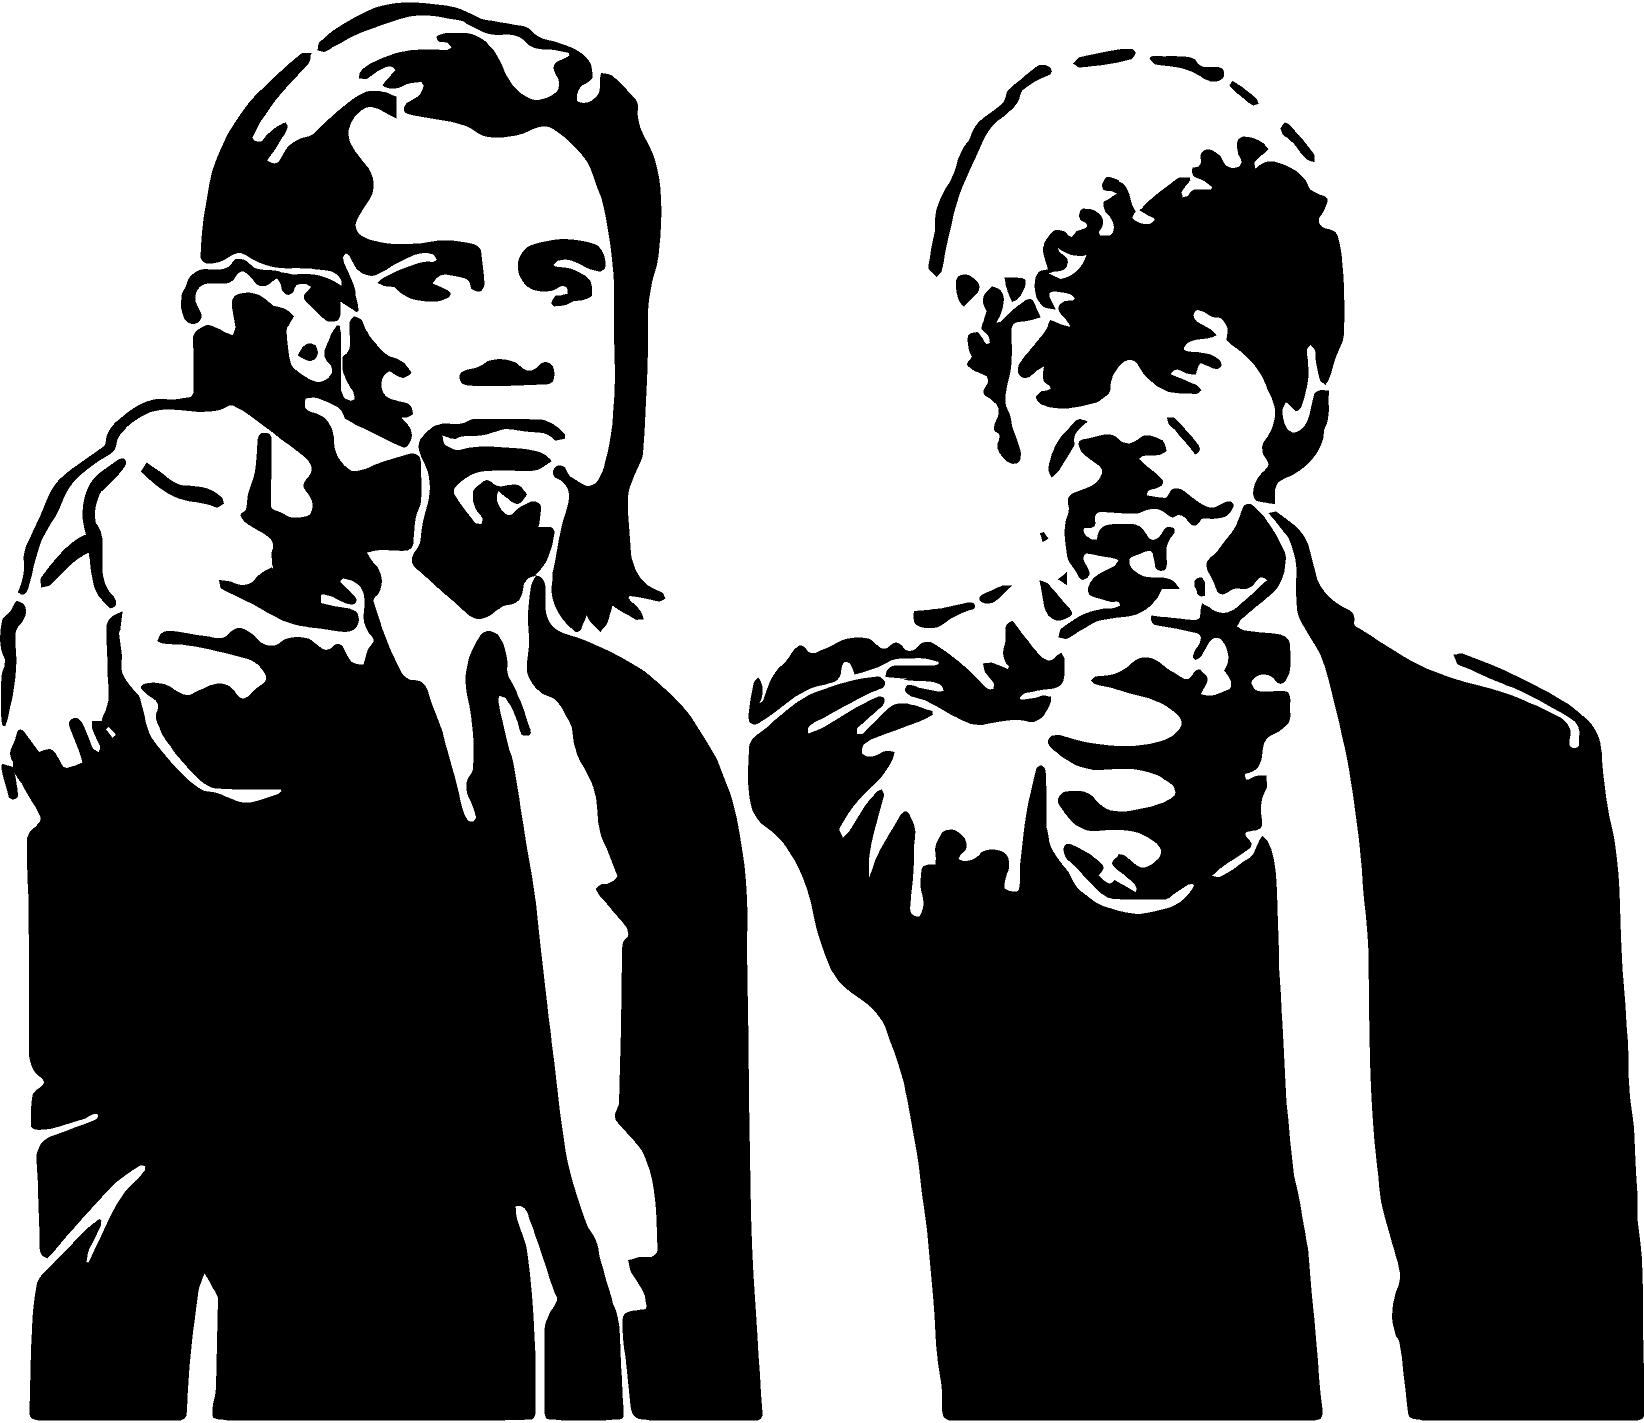 f8b911b4f67c48 Iconic Pulp Fiction Silhouette Size 60cm x 50cm £11.49 with Free UK P P  from www.wearewallart.com